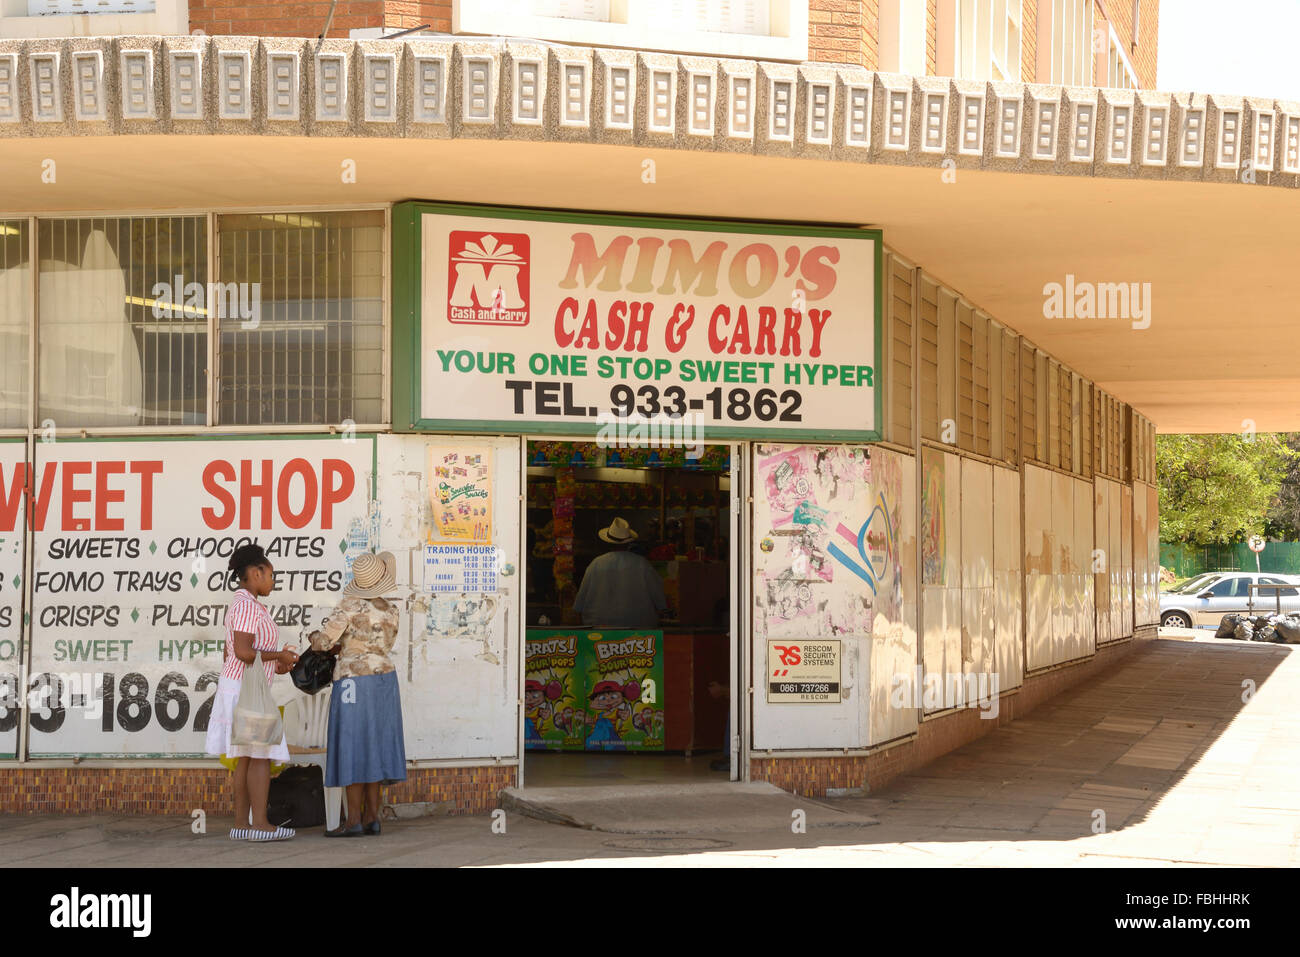 Fast cash loans cairns photo 10